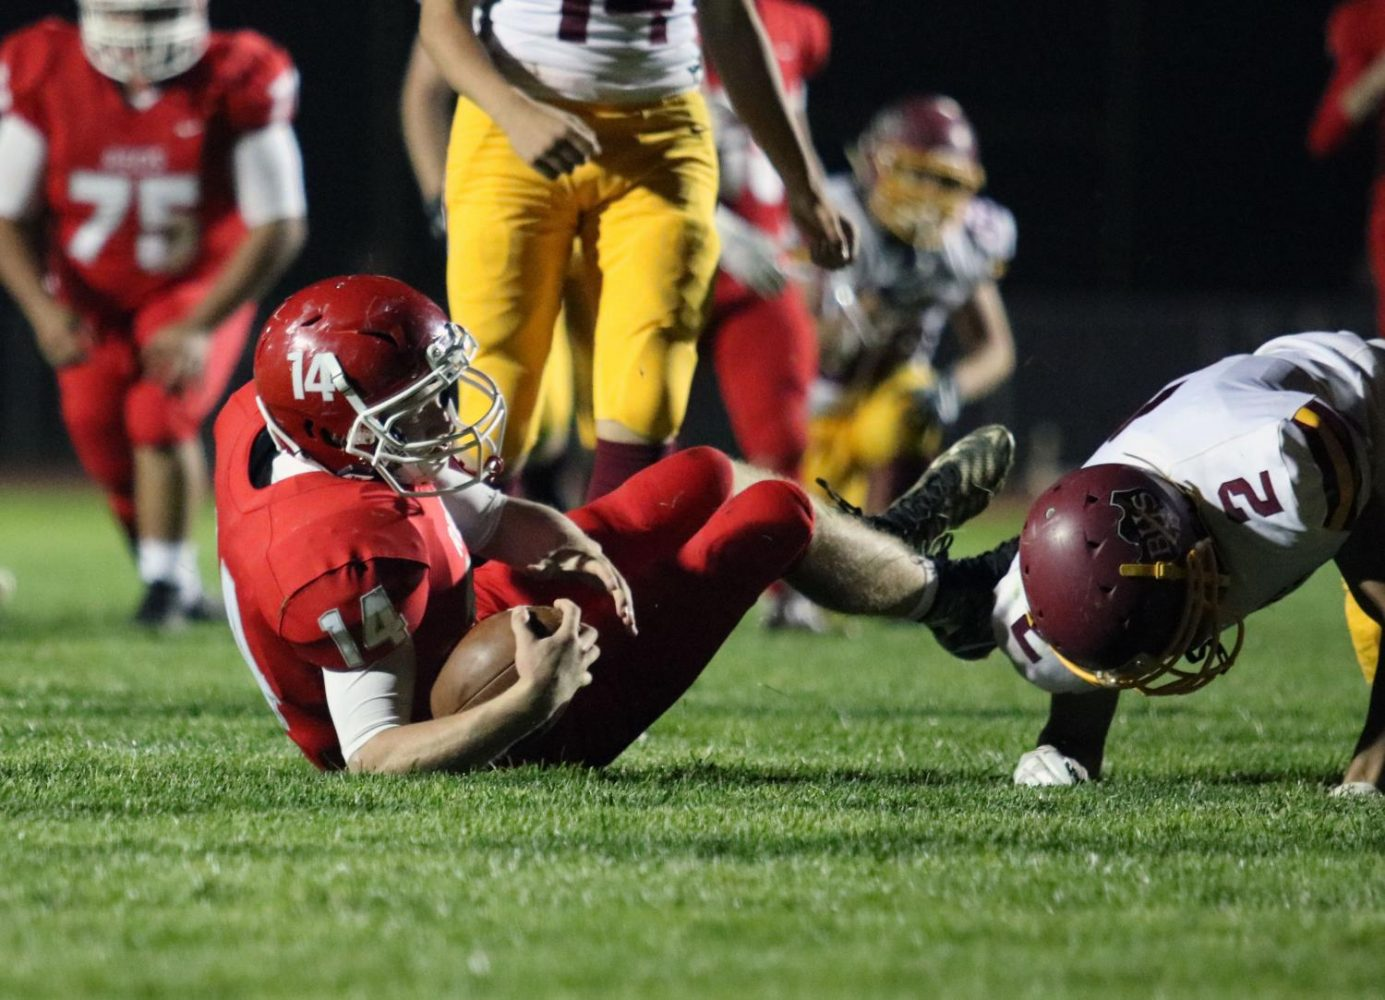 Mason Koehn goes down with the football for a first down.